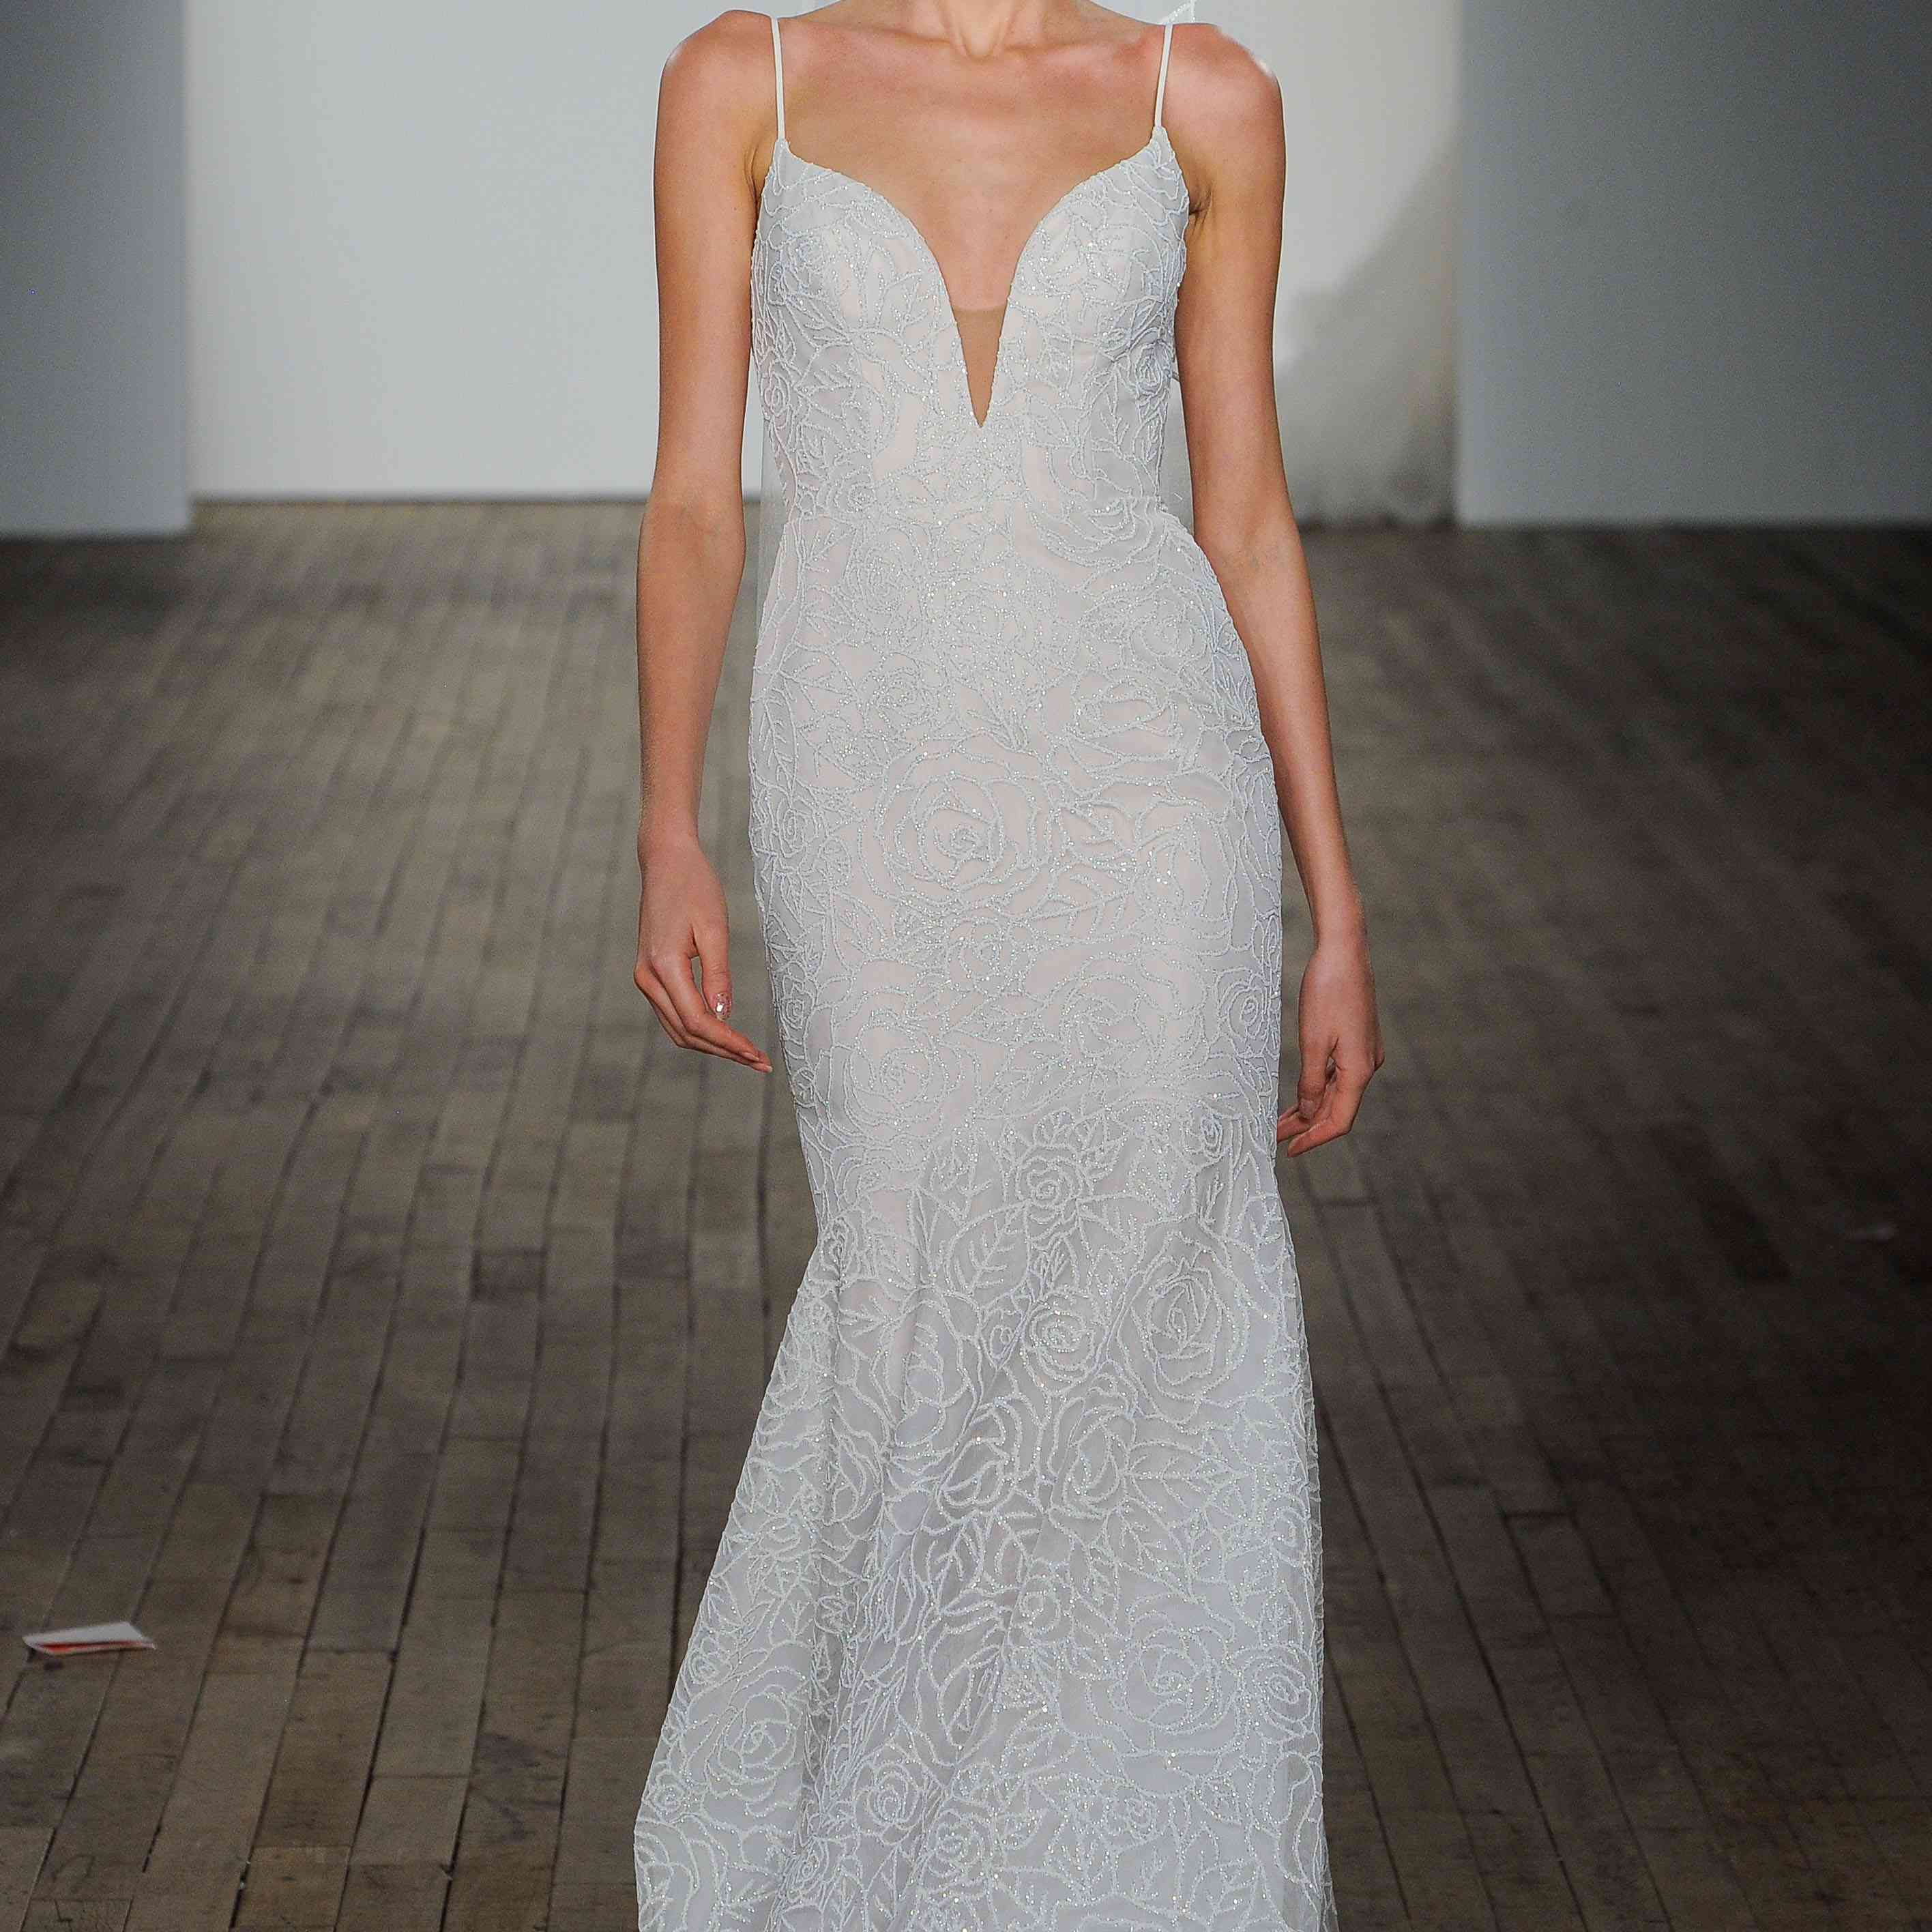 Finch fit-and-flare wedding dress